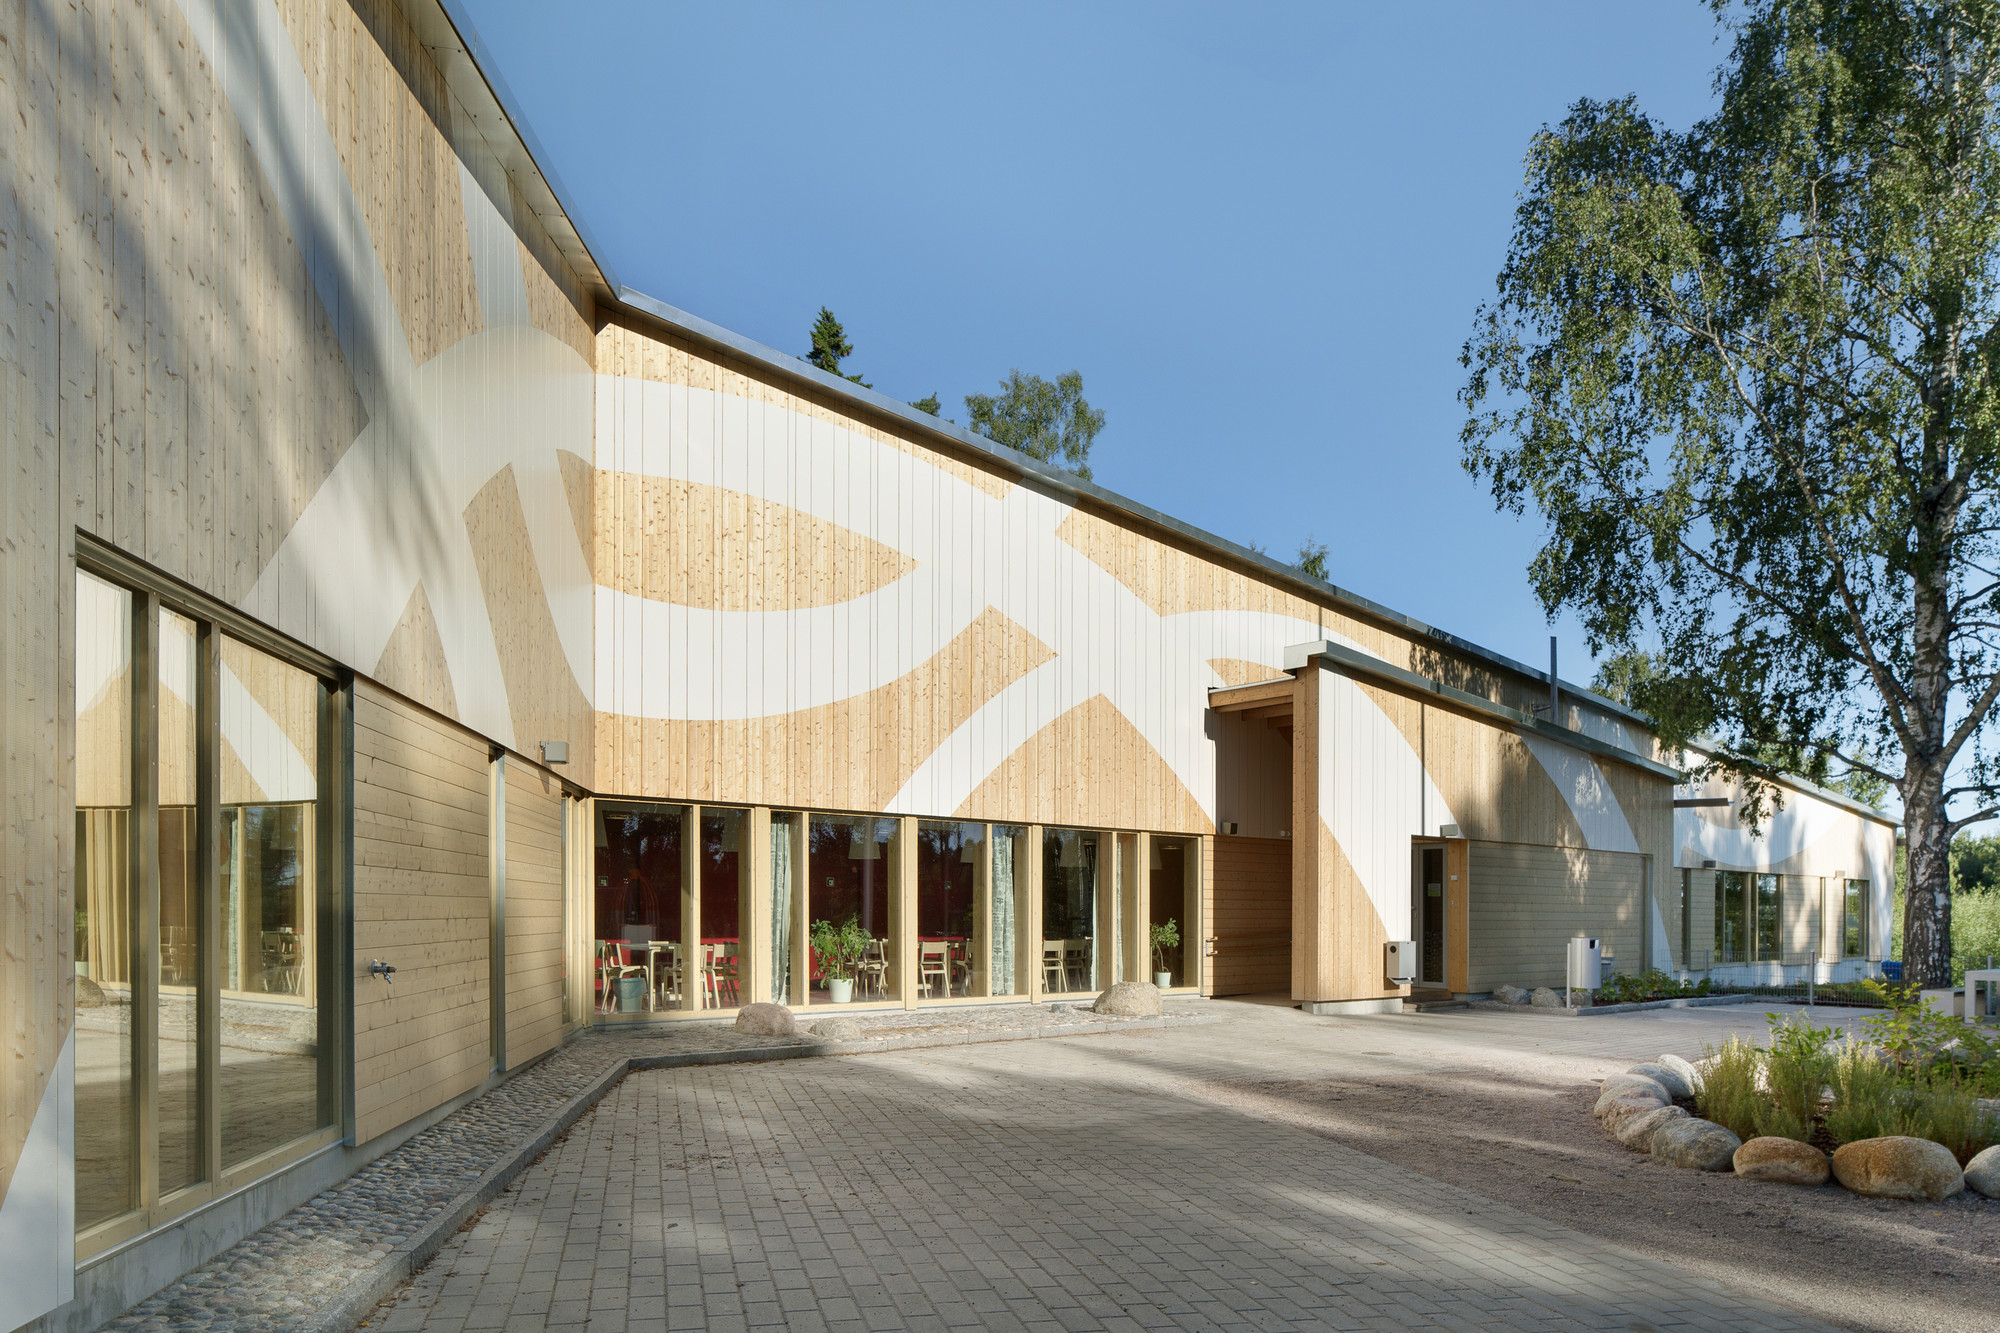 Omenapuisto Day-Care-Center / Hakli Architects